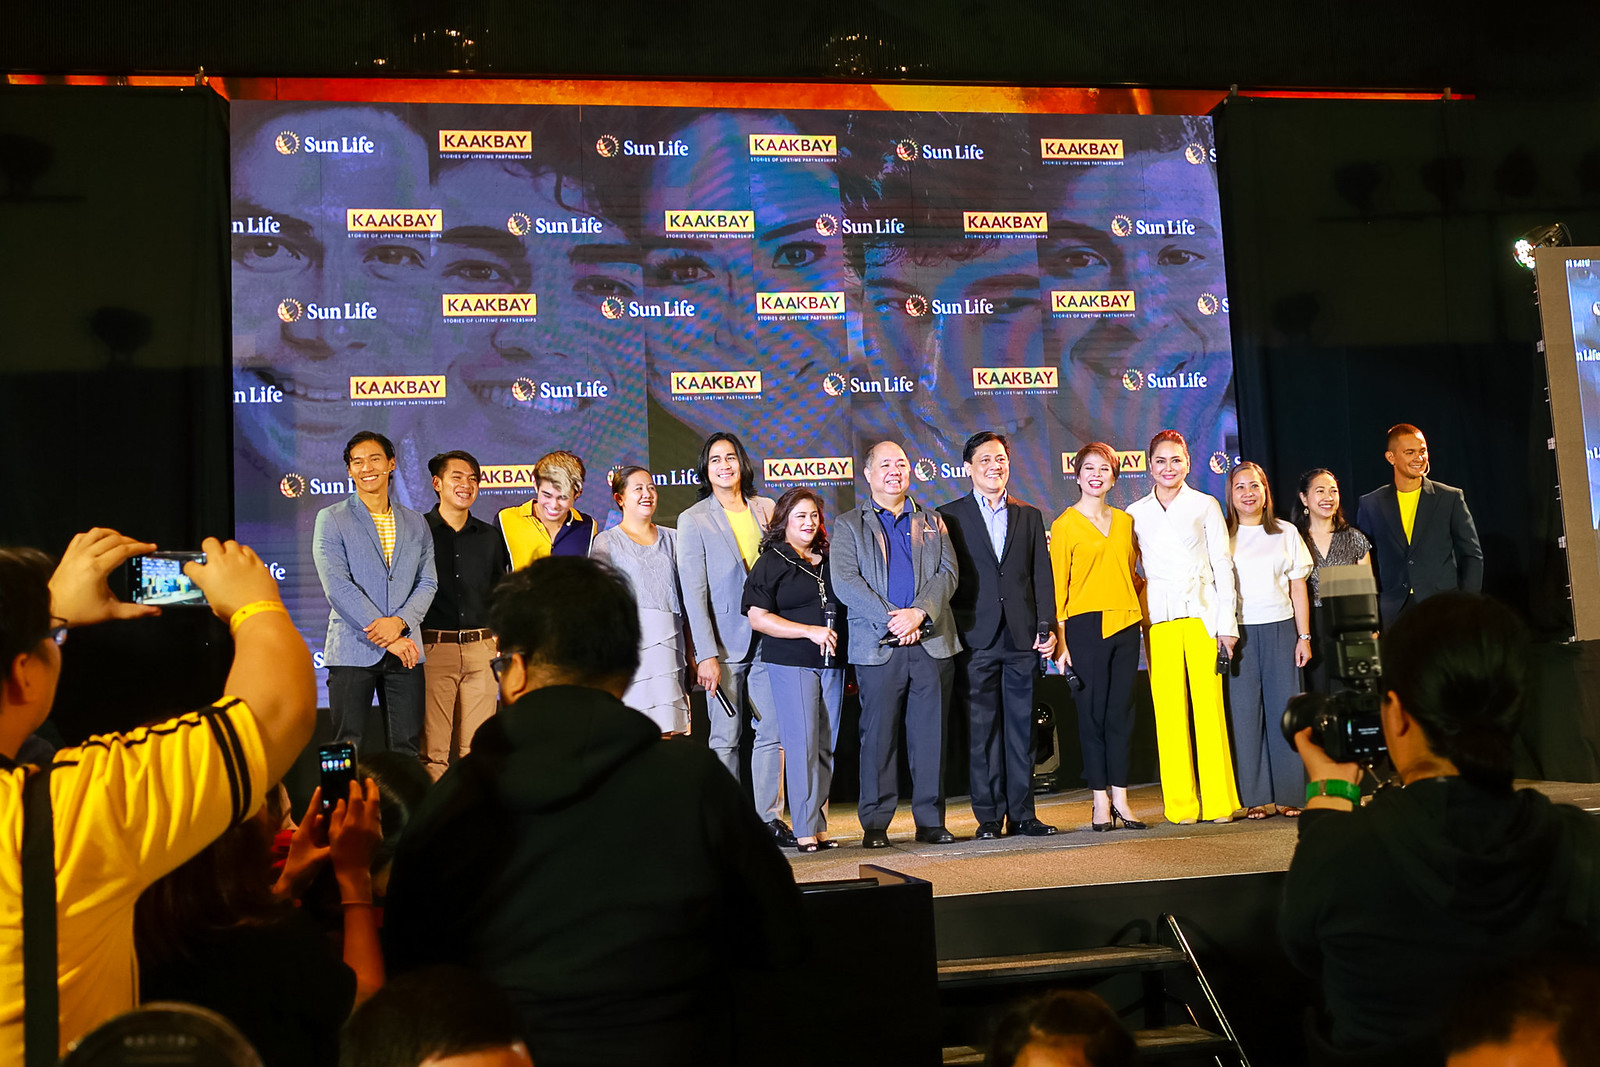 Sun Life Launched Kaakbay: Stories of Lifetime Partnerships